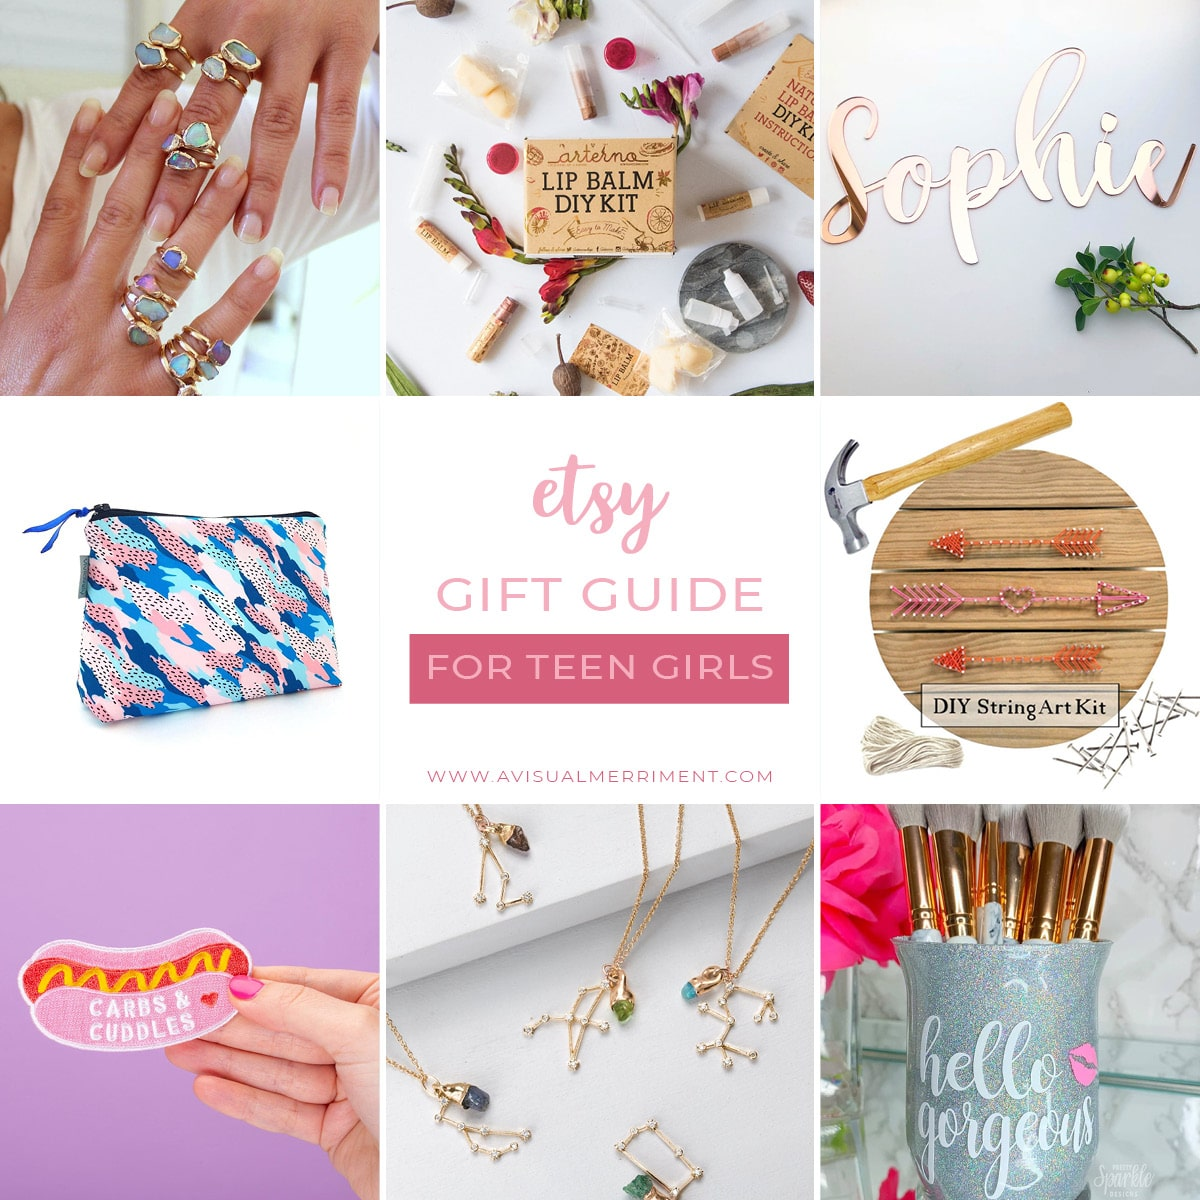 Etsy gift guide for teen girls